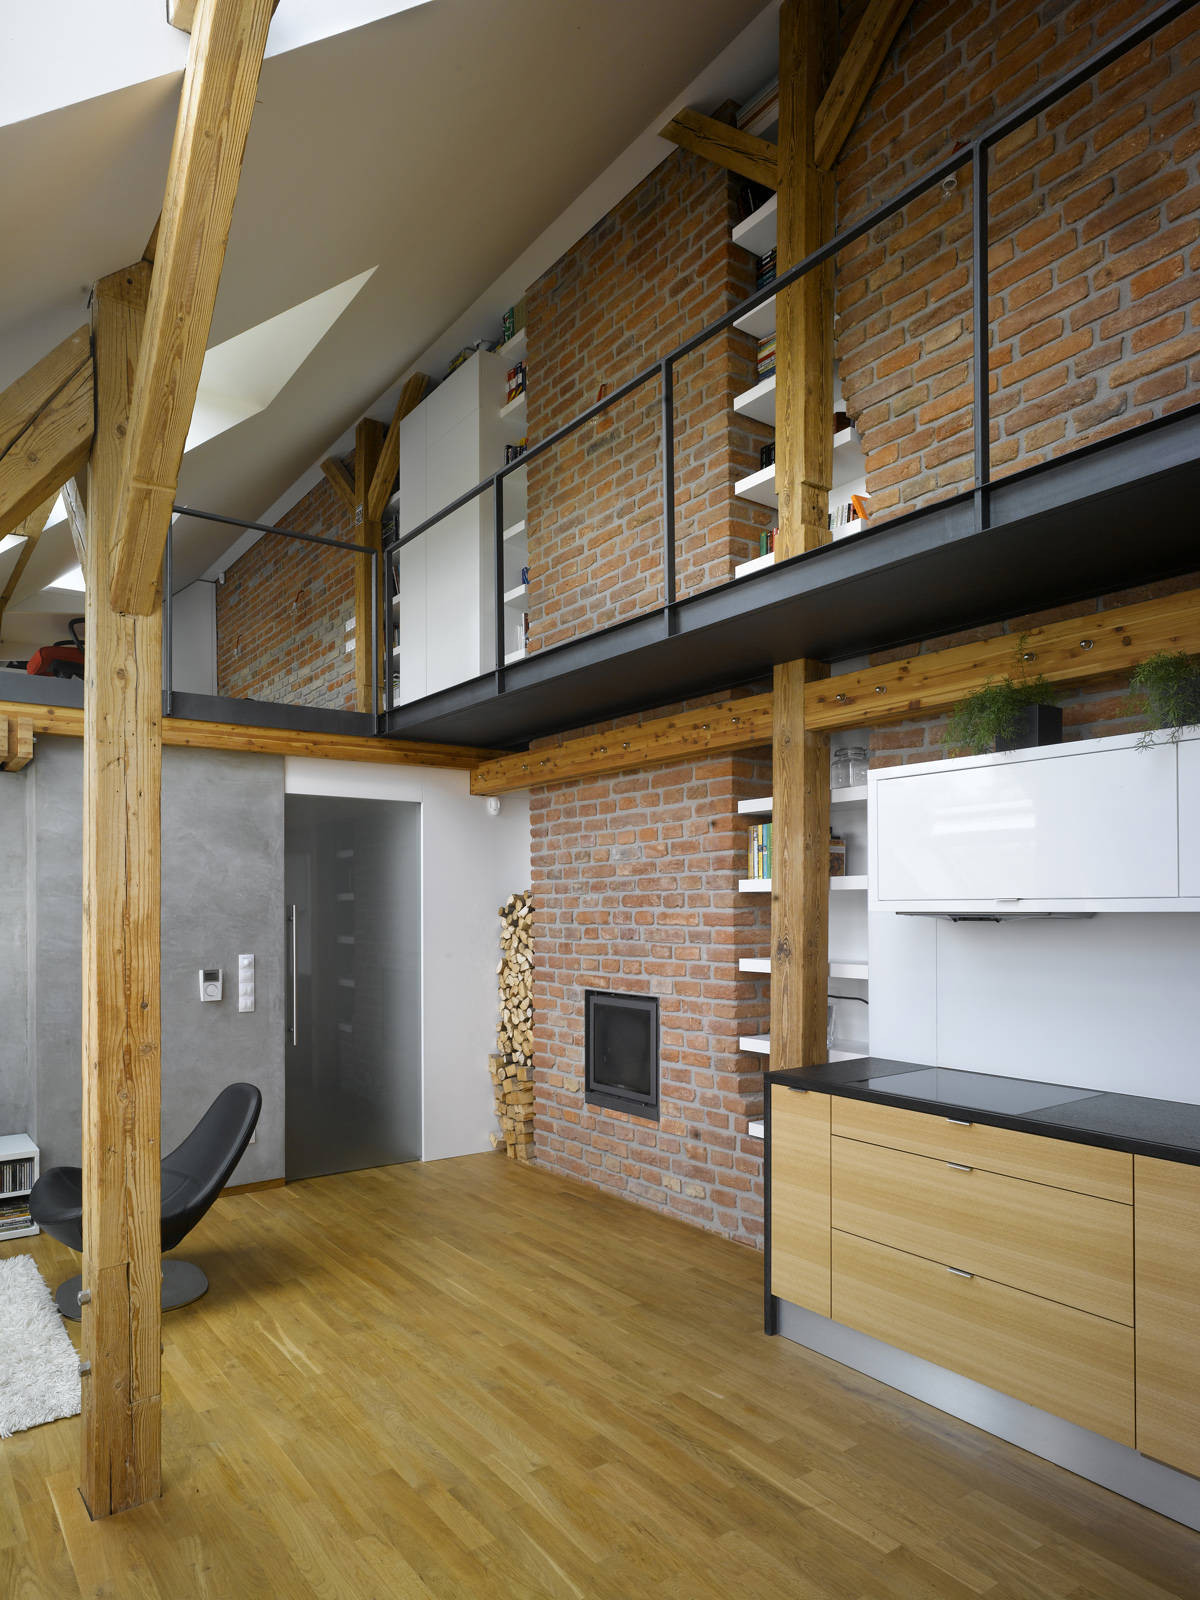 Mini Loft Apartment In Prague Dalibor Hlavacek Archdaily